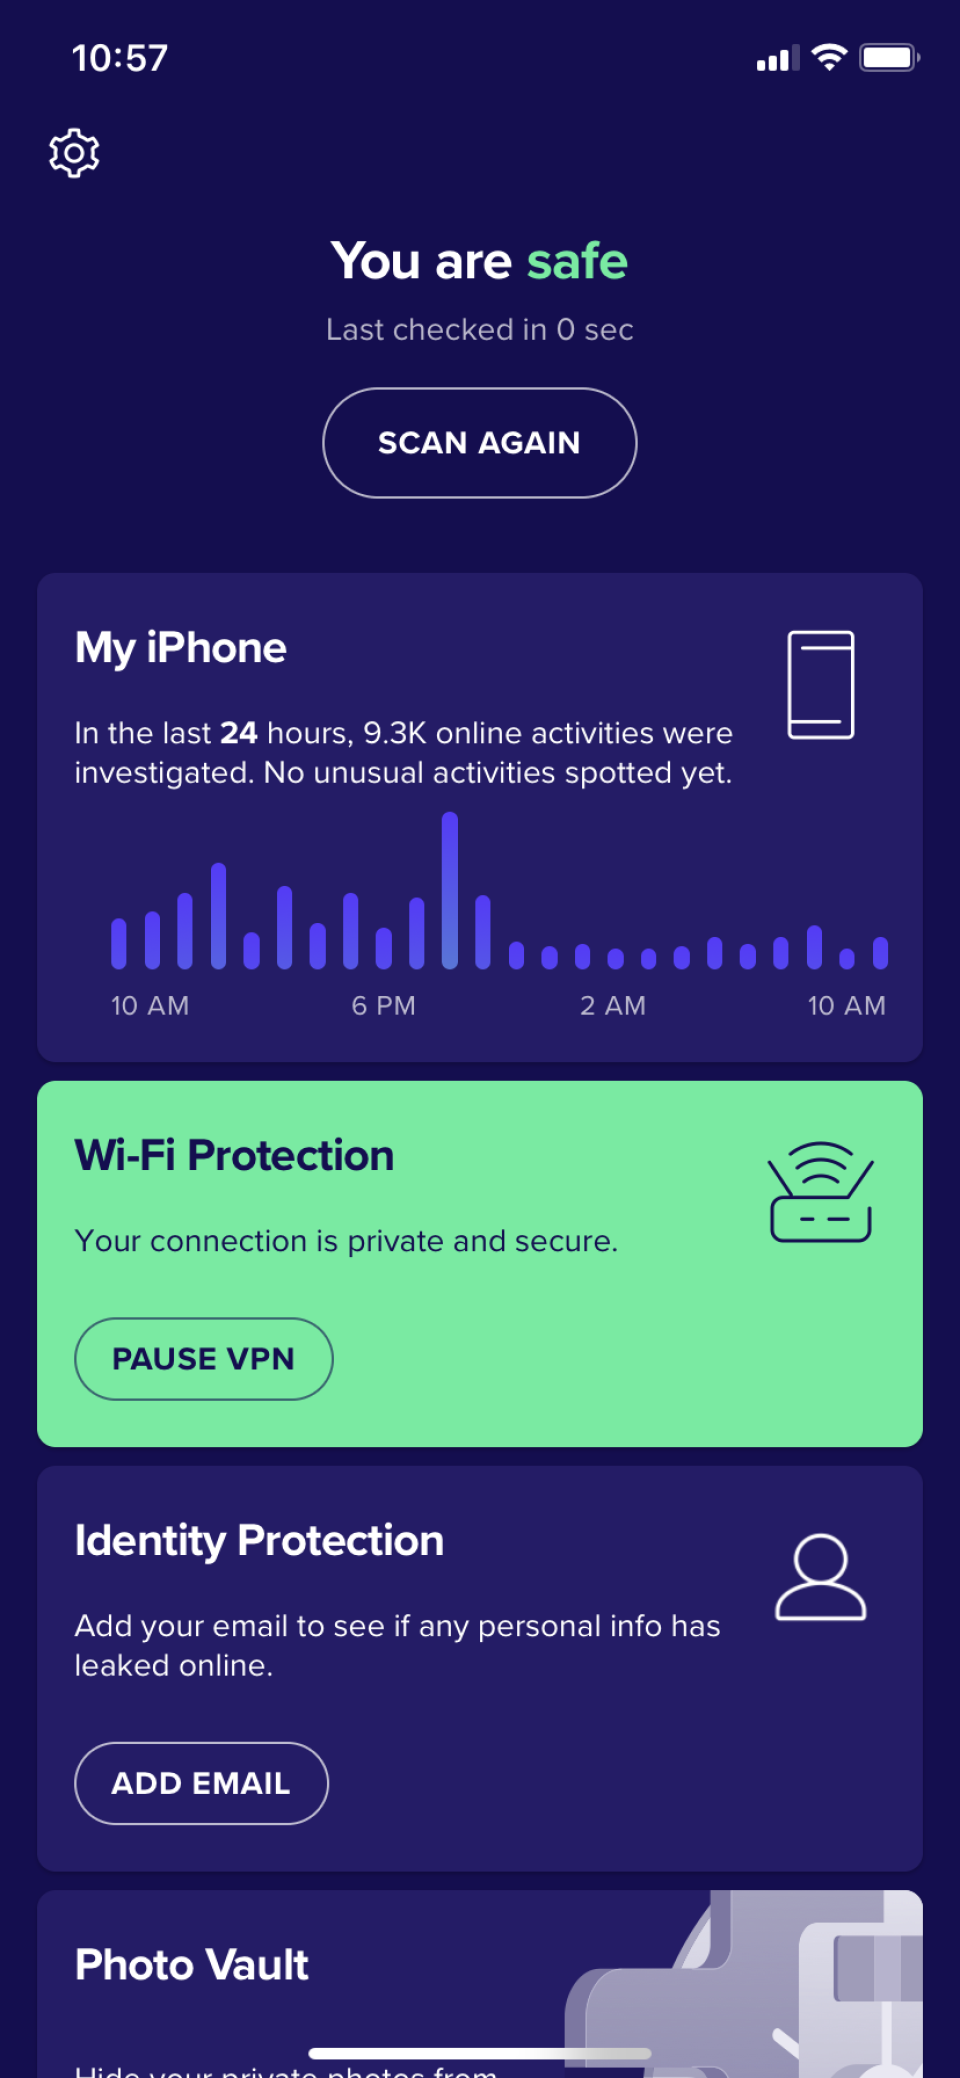 Avast Small Office Protection scan mobile devices